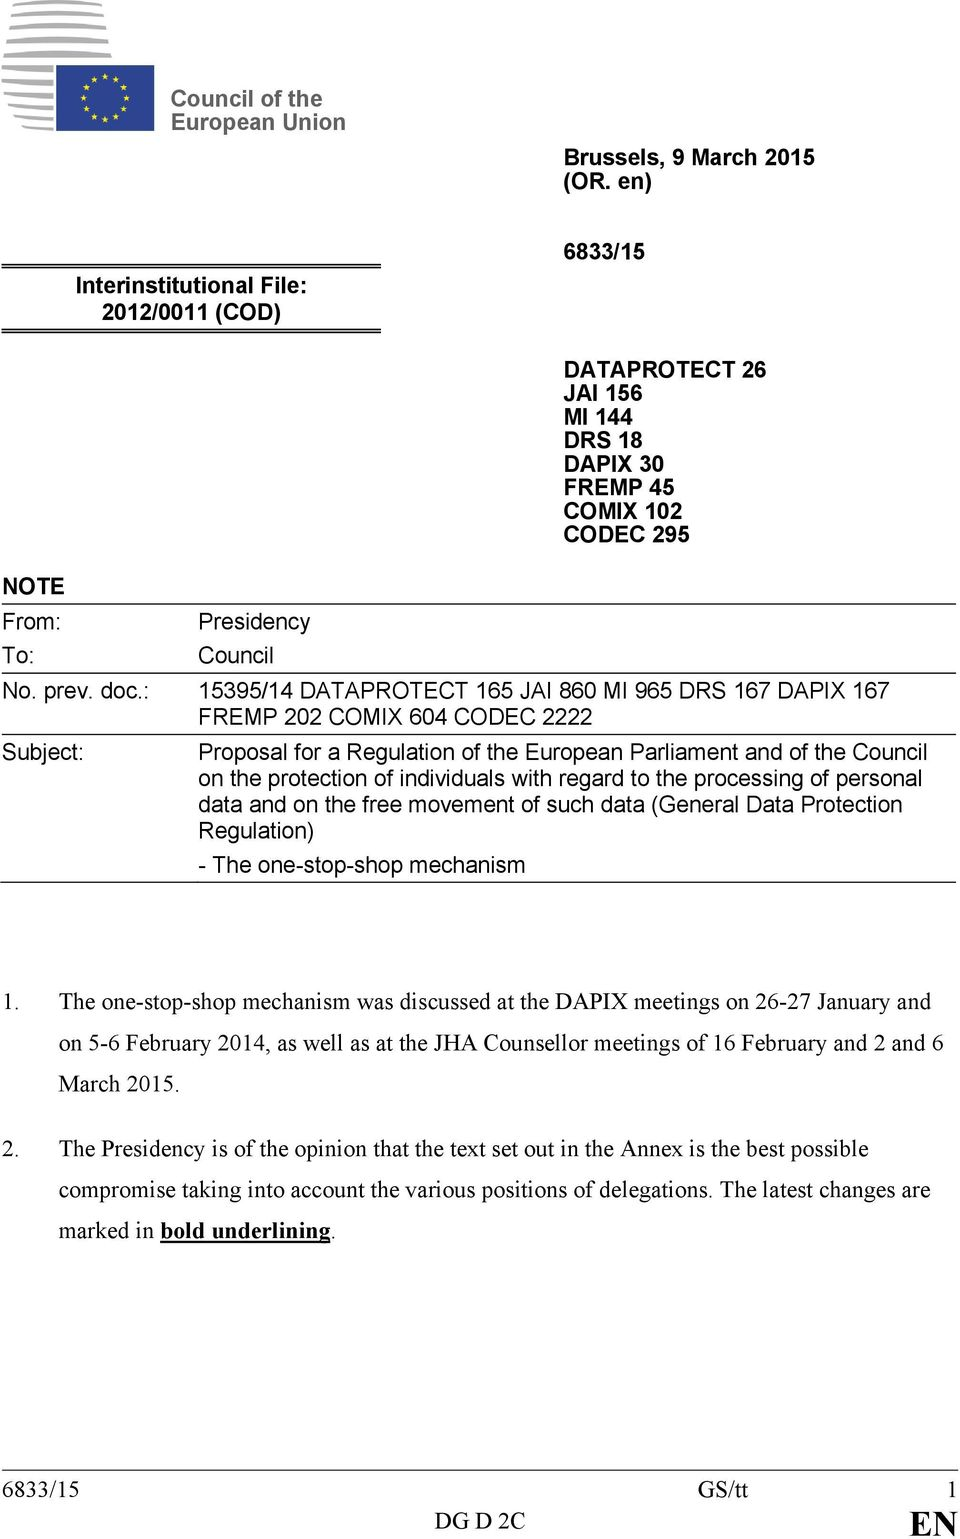 : 15395/14 DATAPROTECT 165 JAI 860 MI 965 DRS 167 DAPIX 167 FREMP 202 COMIX 604 CODEC 2222 Subject: Proposal for a Regulation of the European Parliament and of the Council on the protection of